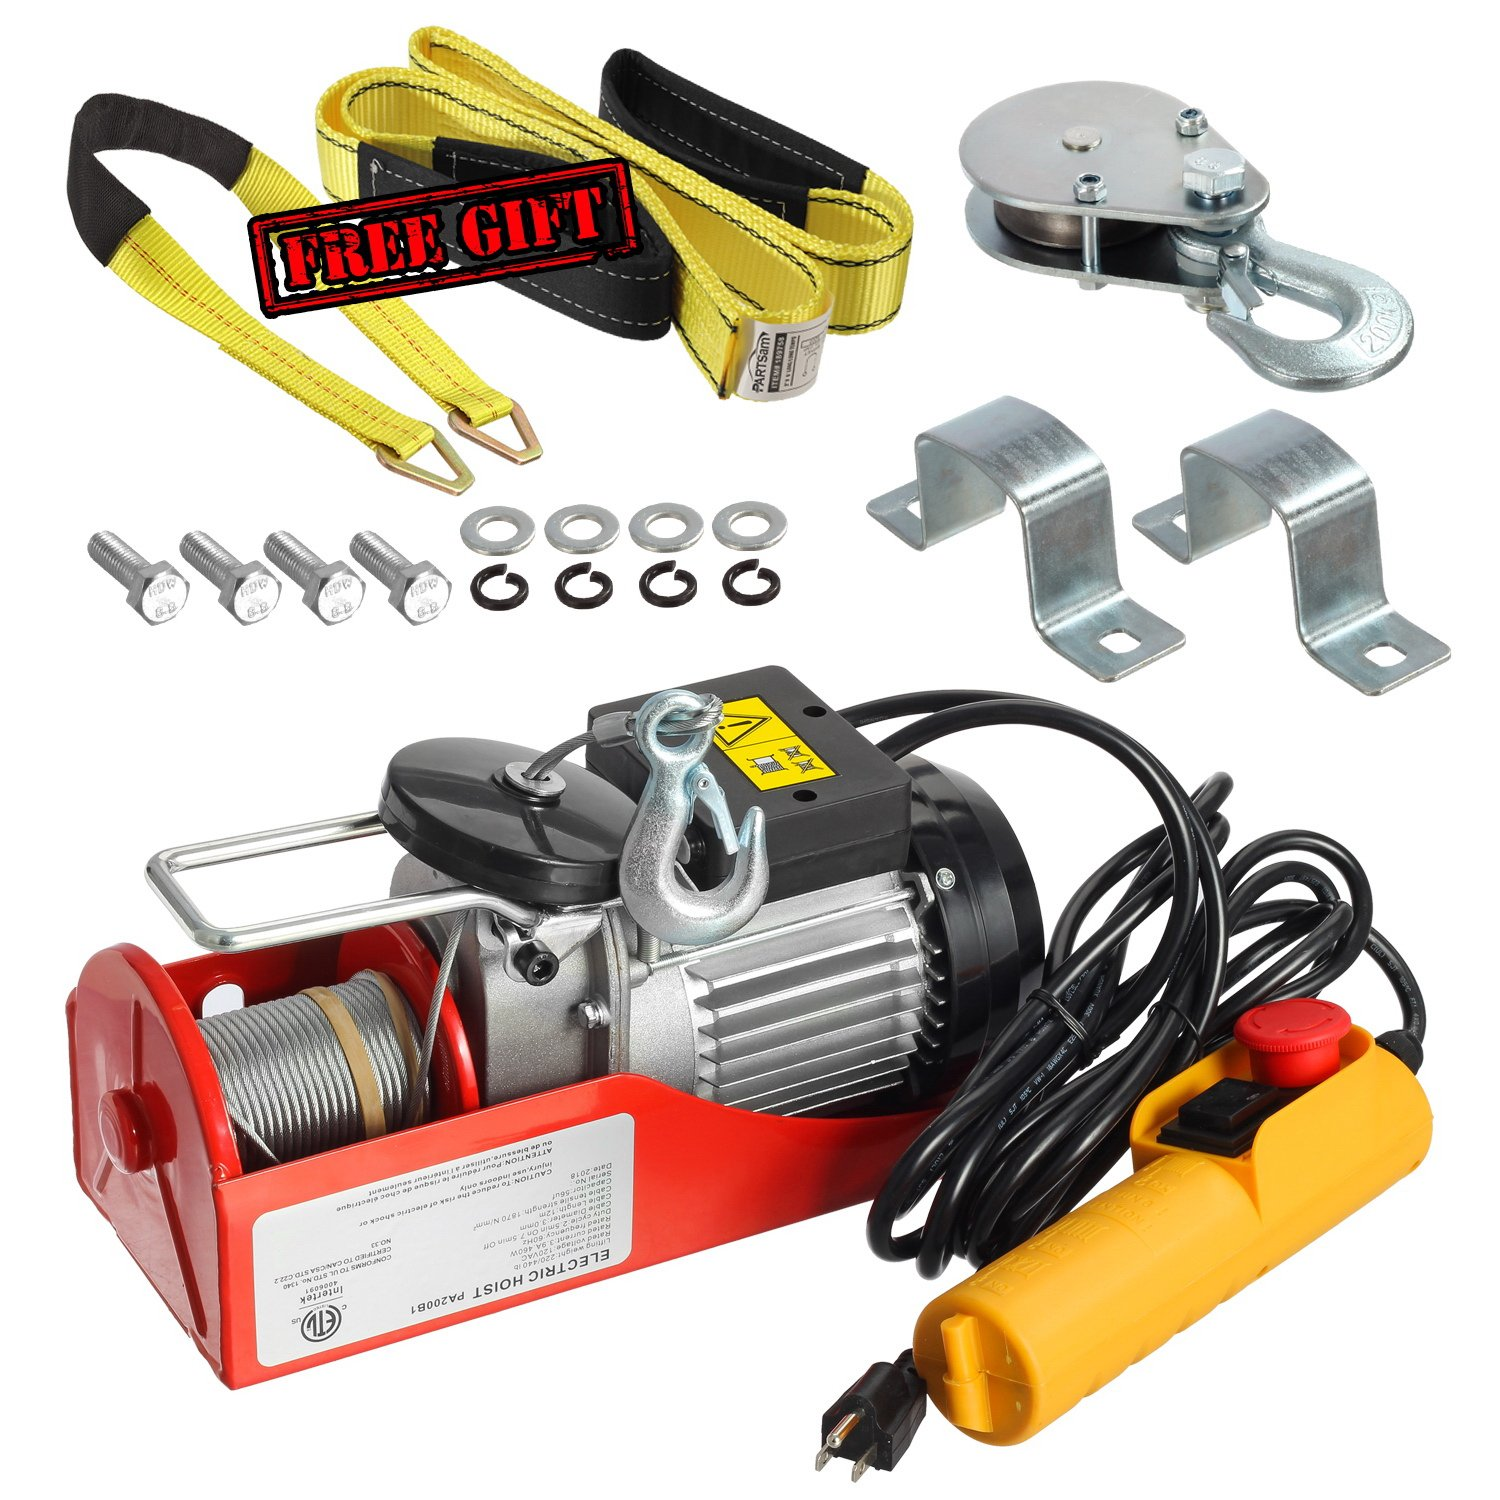 Partsam 440 lbs Lift Electric Hoist Crane Remote Control Power System, Zinc-Plated Steel Wire Overhead Crane Garage Ceiling Pulley Winch w/Premium Straps (UL/CUL Approval, w/Emergency Stop Switch) by Partsam (Image #8)